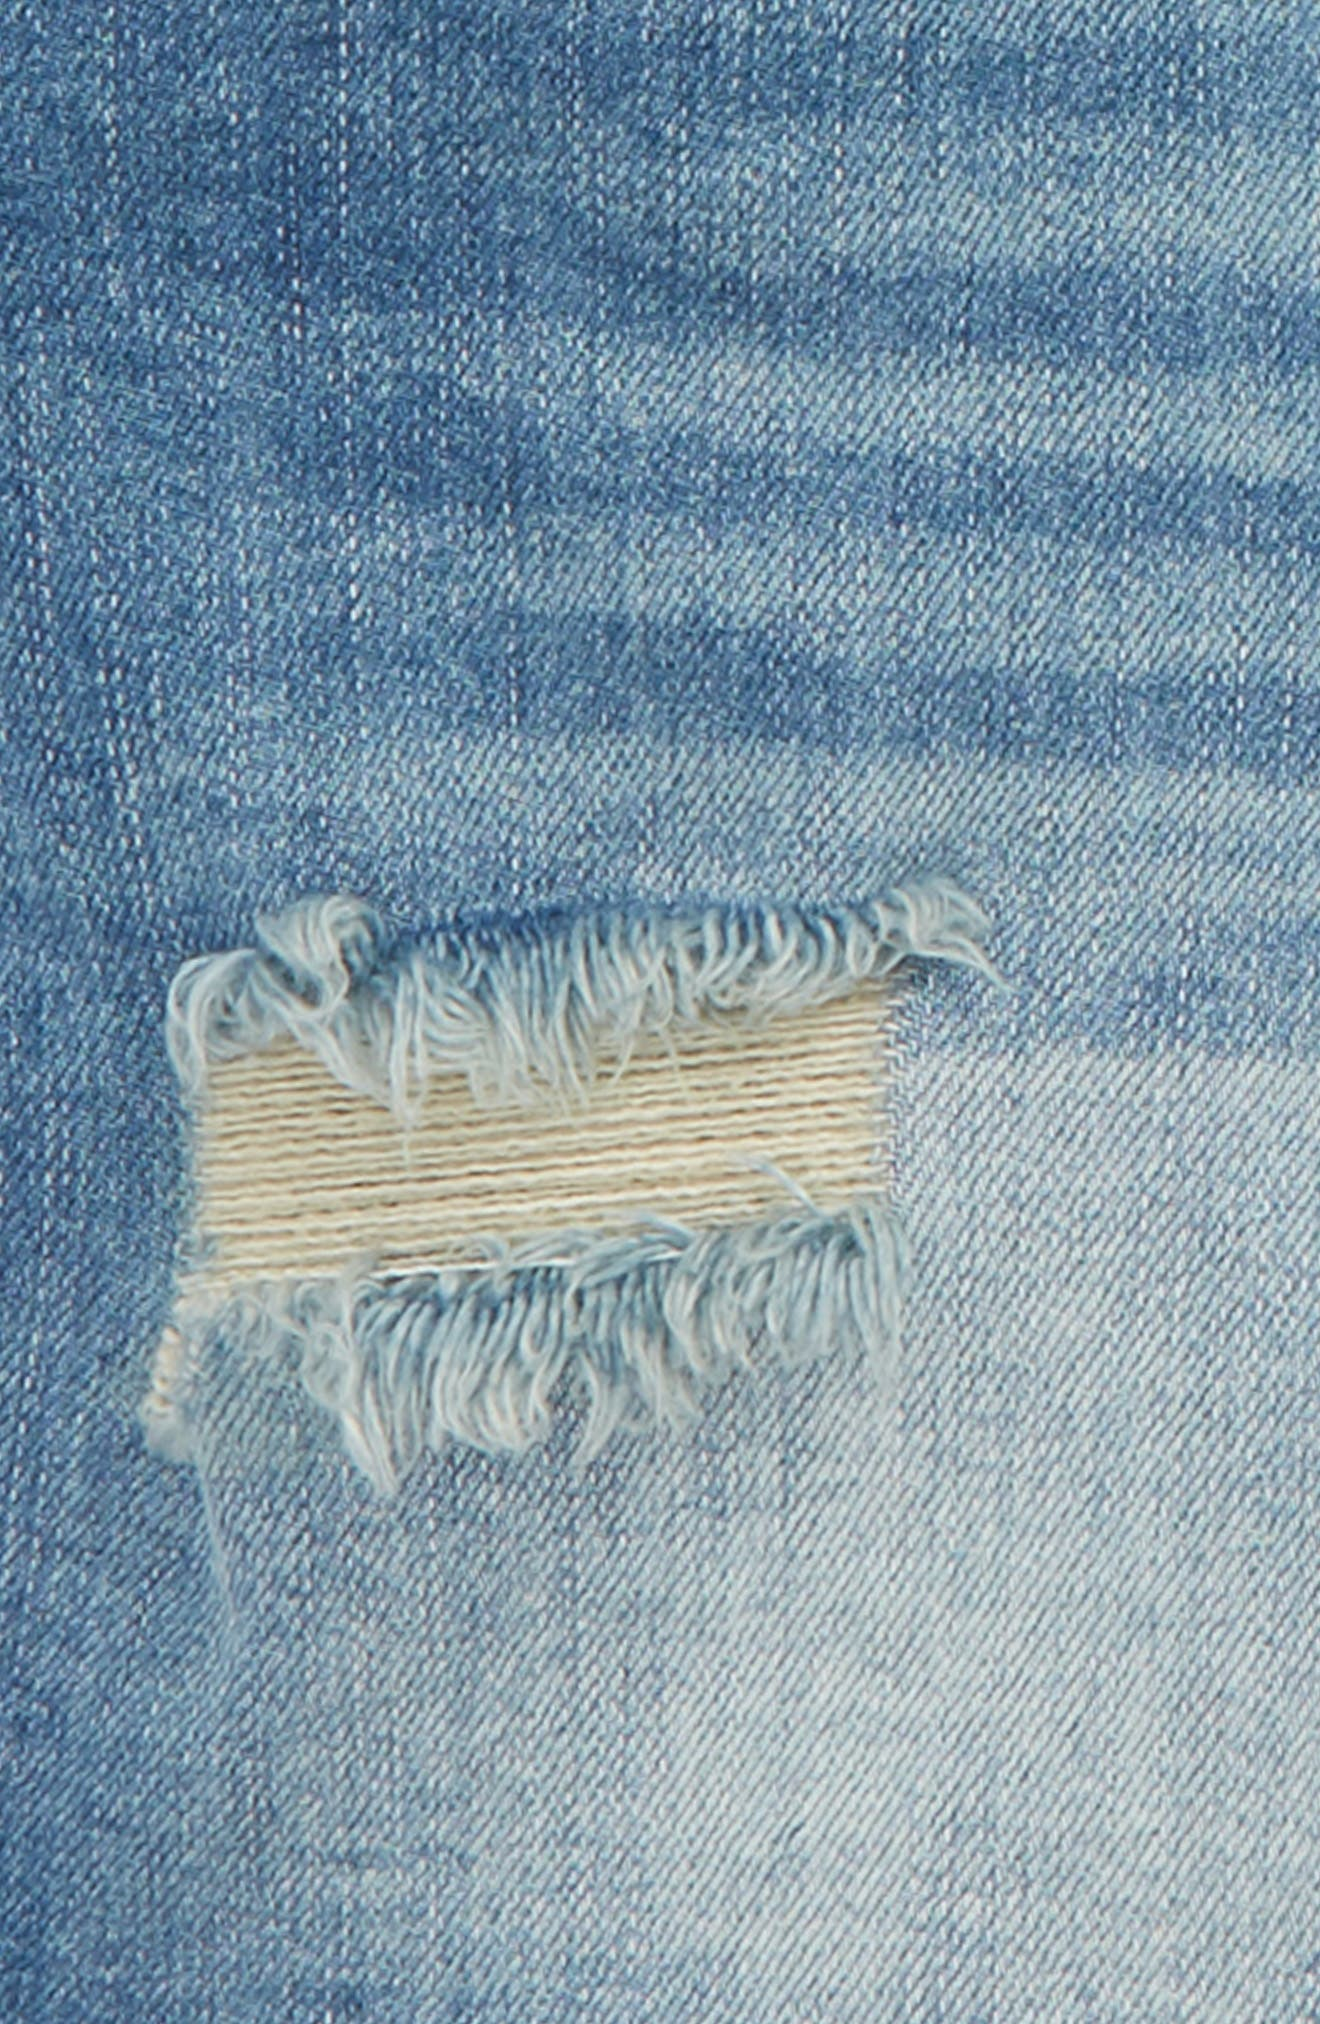 Distressed Denim Overall Shorts,                             Alternate thumbnail 3, color,                             420